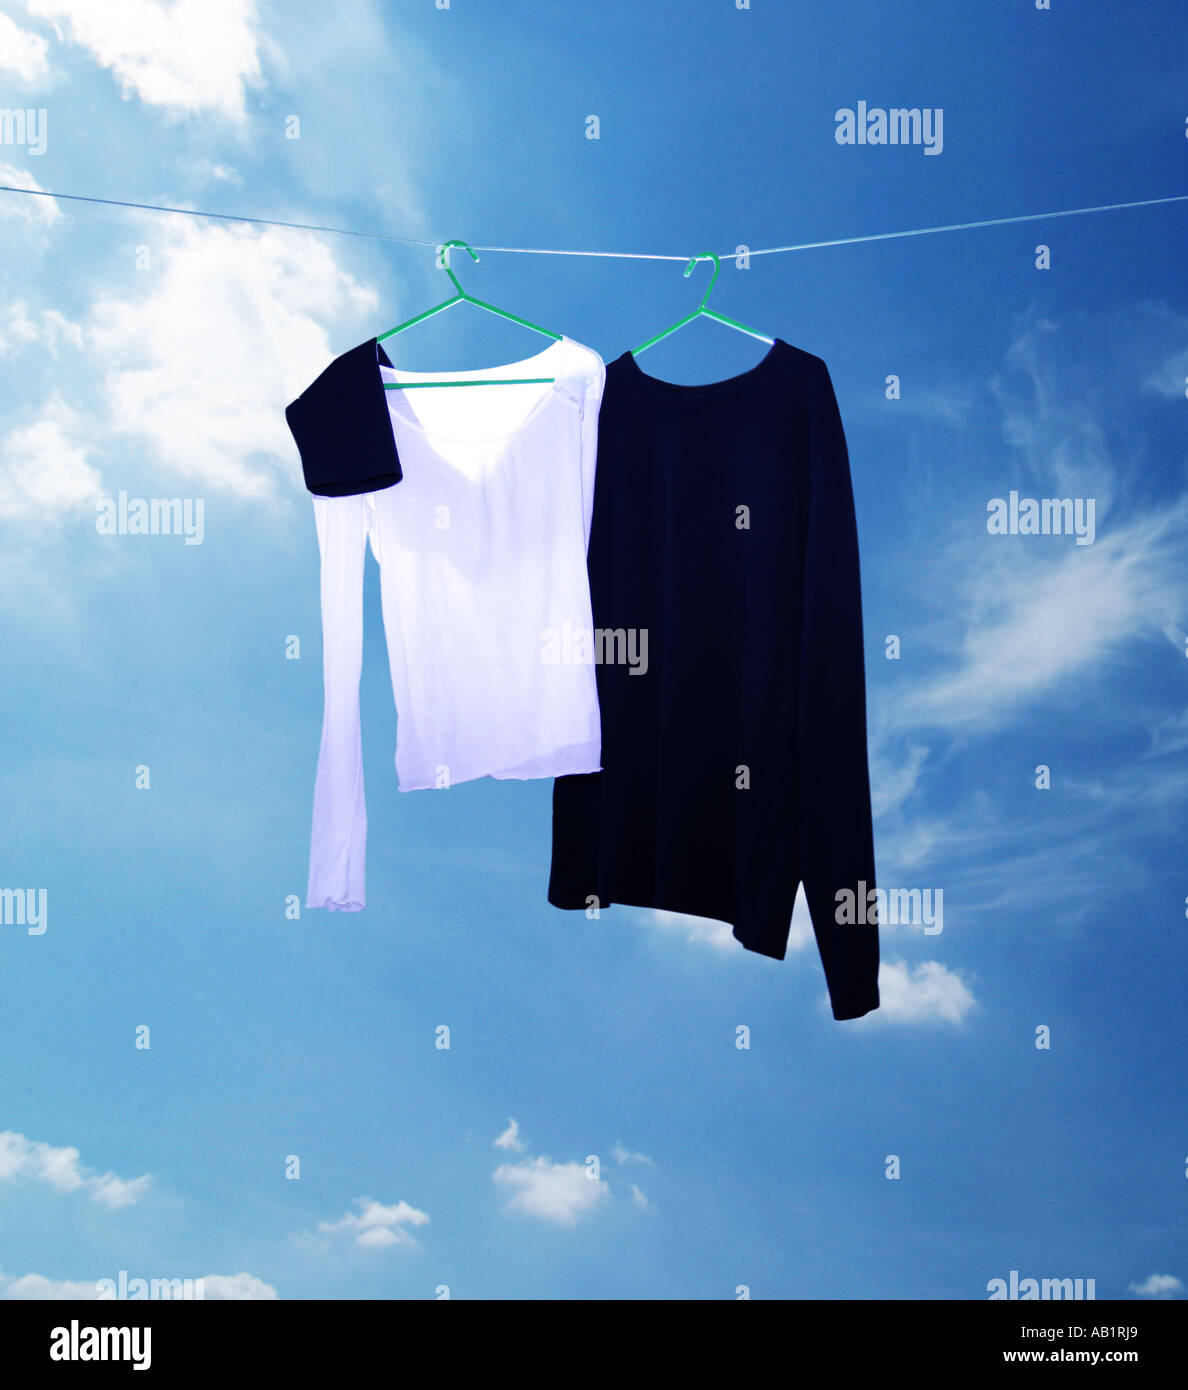 two tops on a washing line - Stock Image